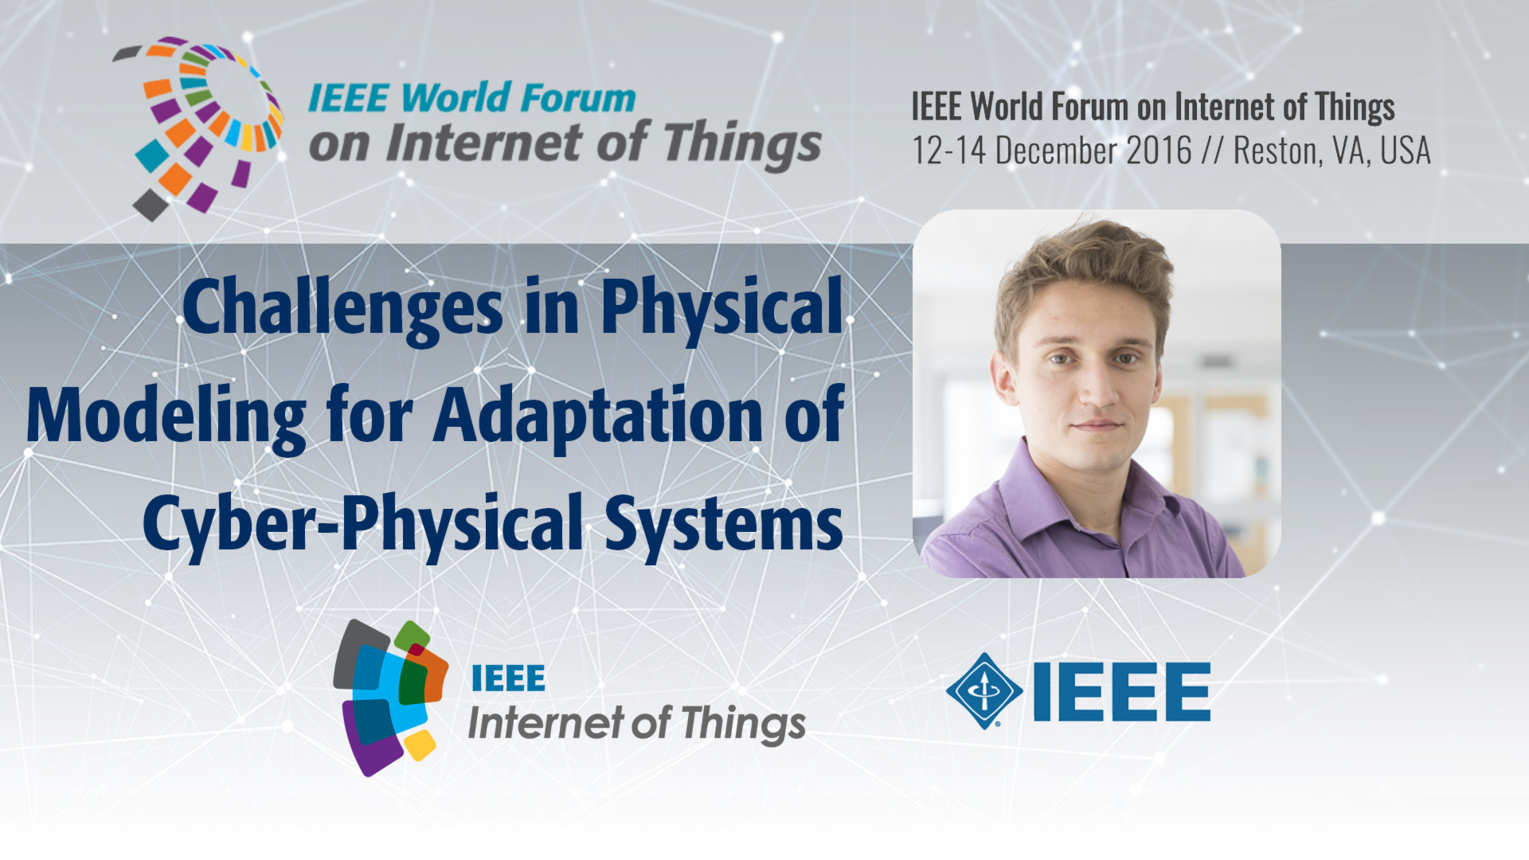 Ivan Ruchkin: Challenges in Physical Modeling for Adaptation of Cyber-Physical Systems: WF IoT 2016